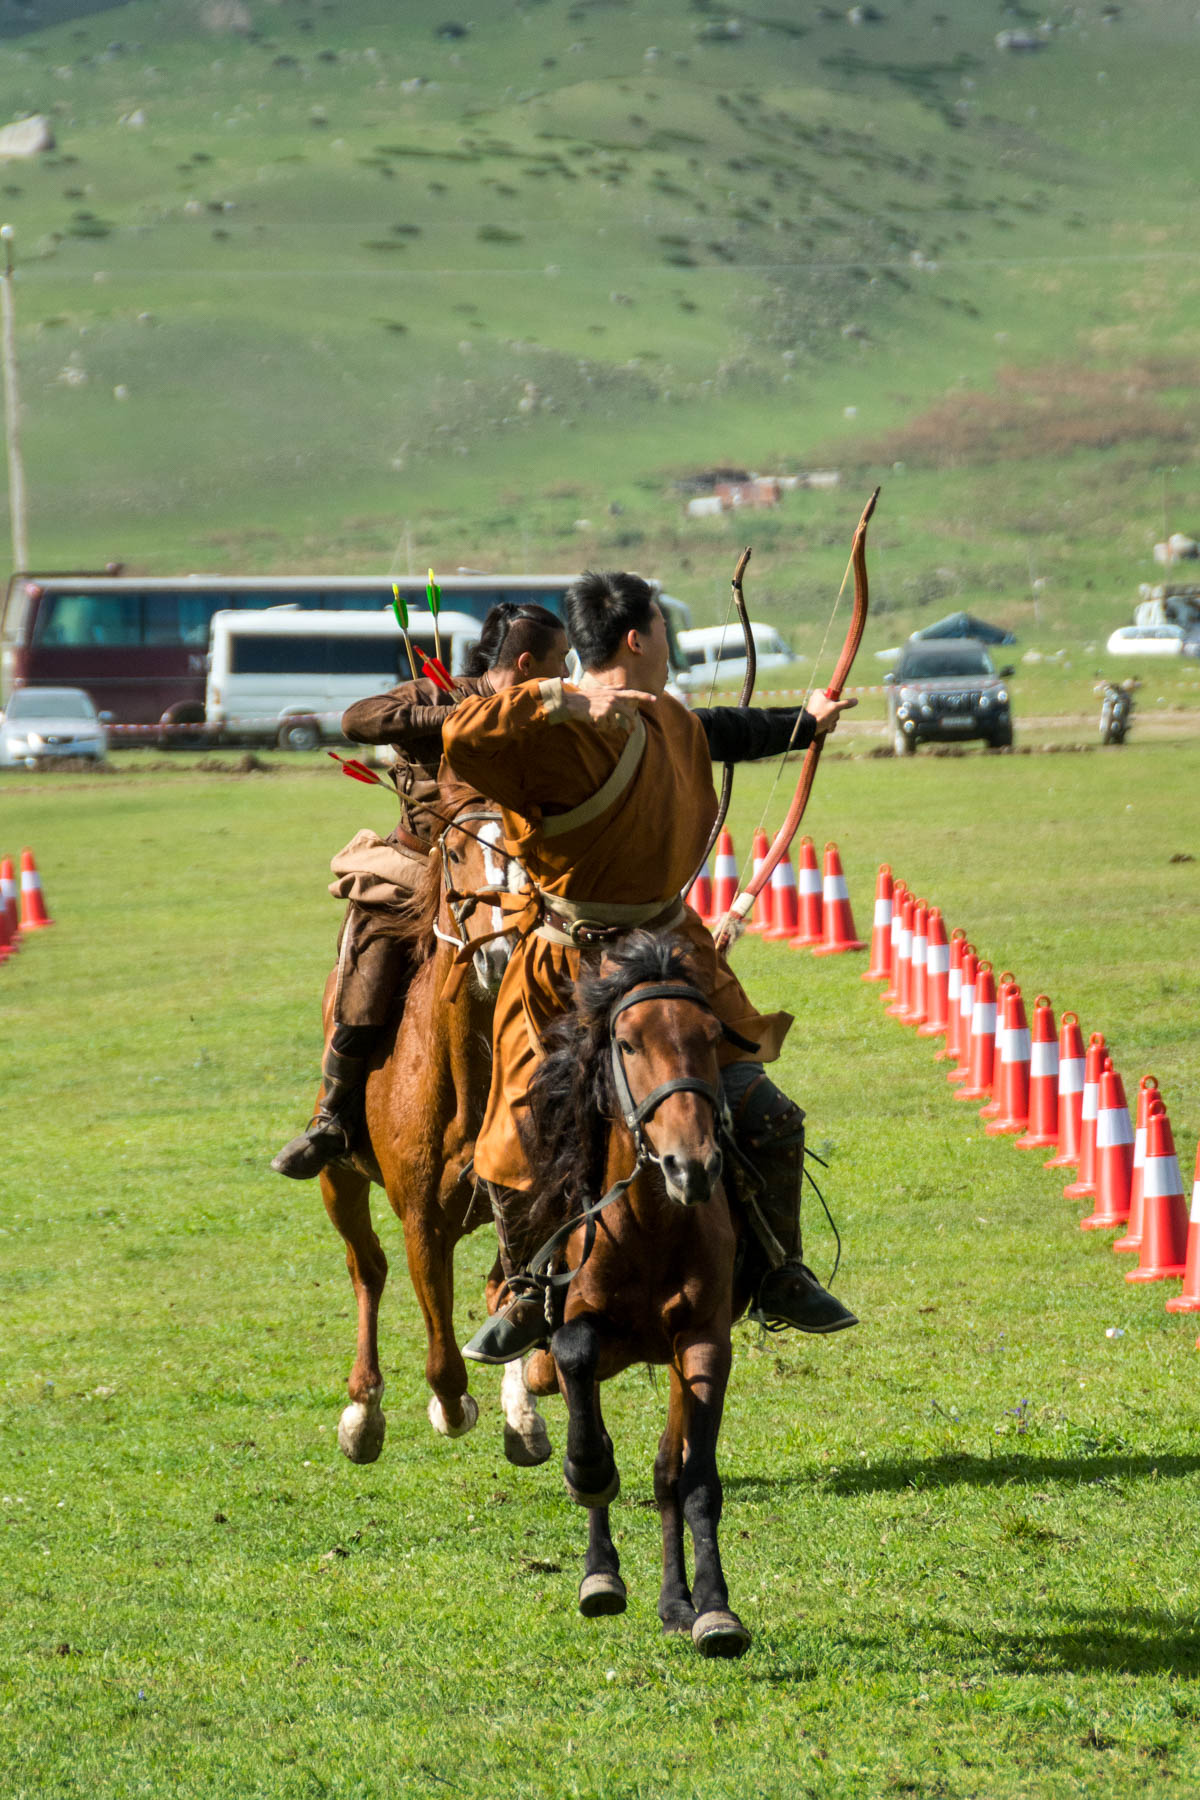 Horseback archery at the World Nomad Games in Kyrgyzstan